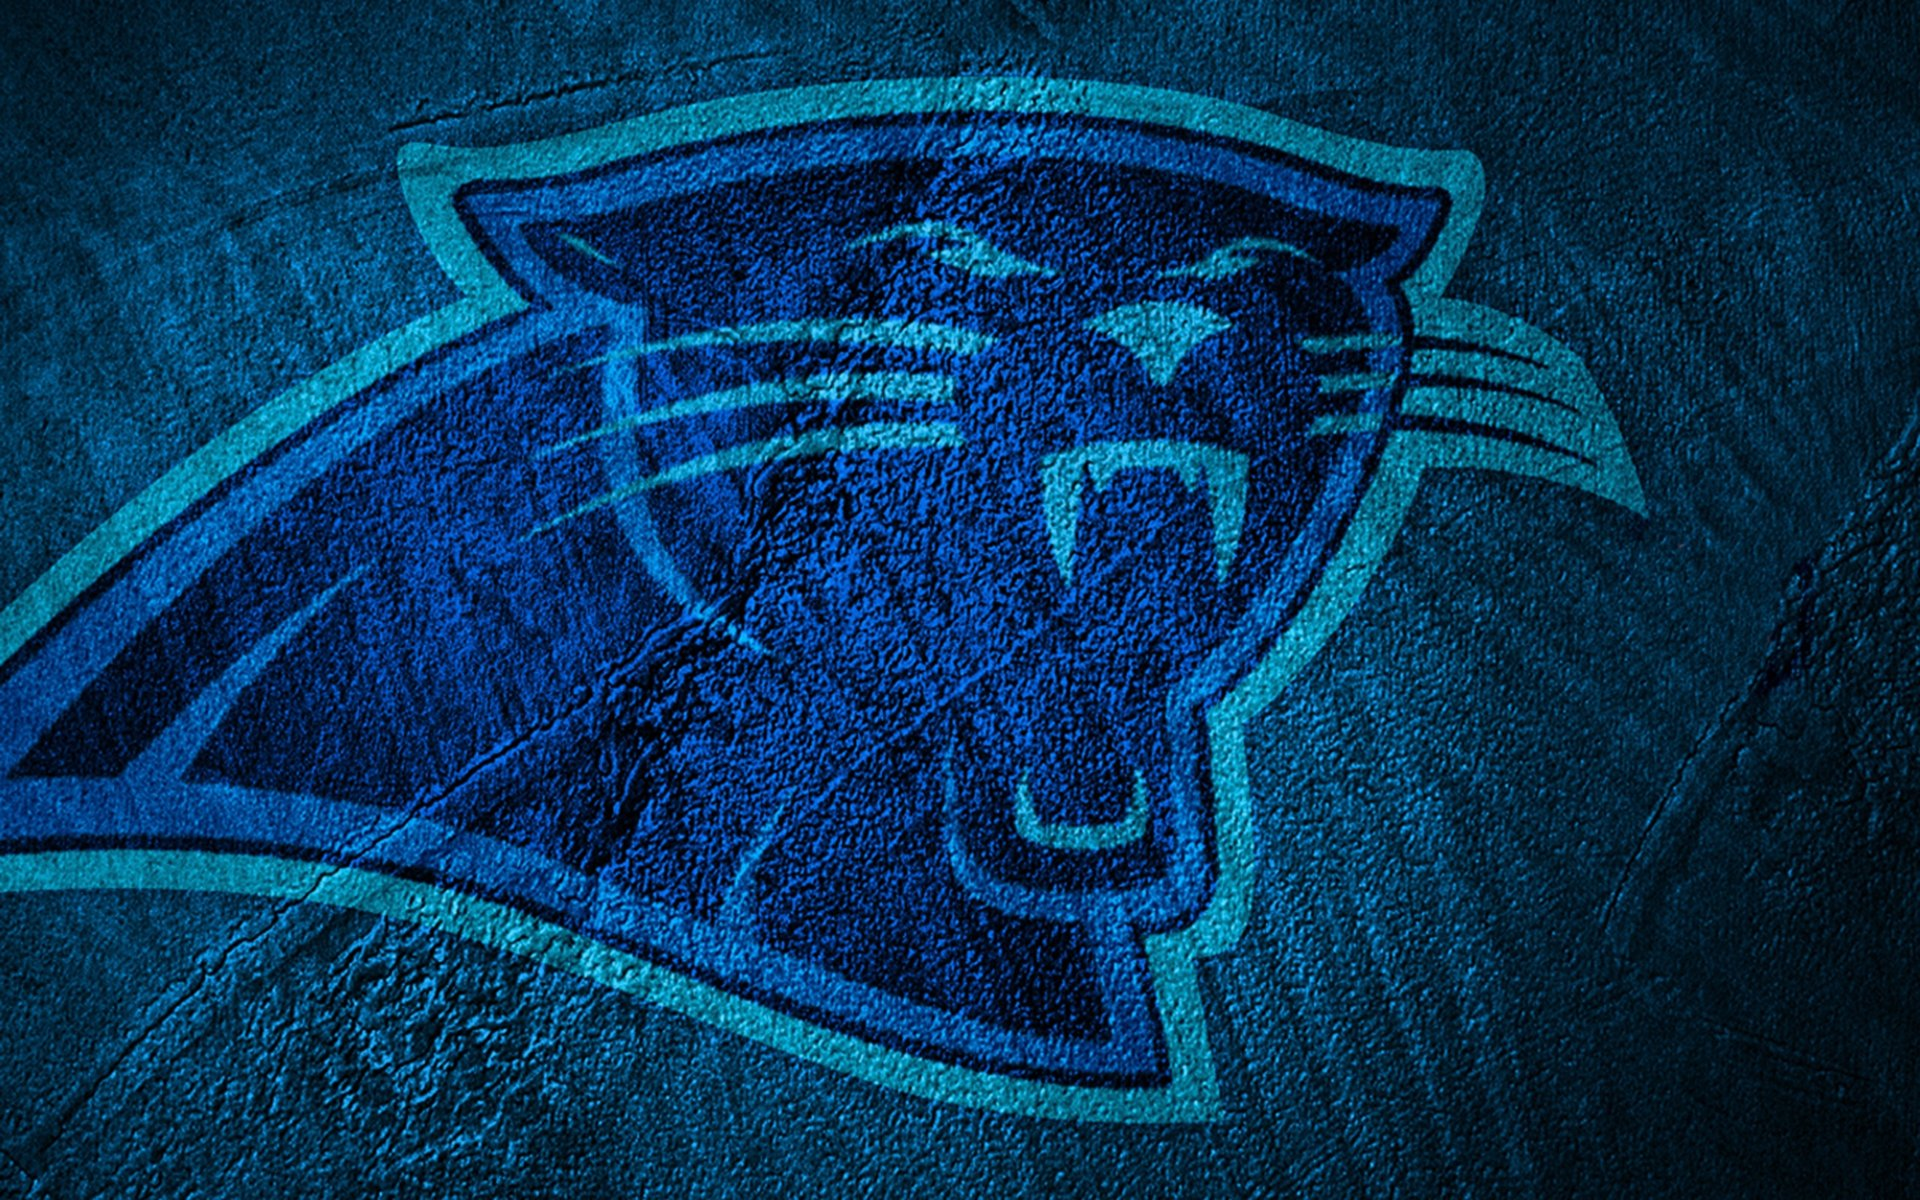 Inspirational Quotes Hd Wallpapers For Mobile Carolina Panthers Logo Wallpaper Hd Pixelstalk Net